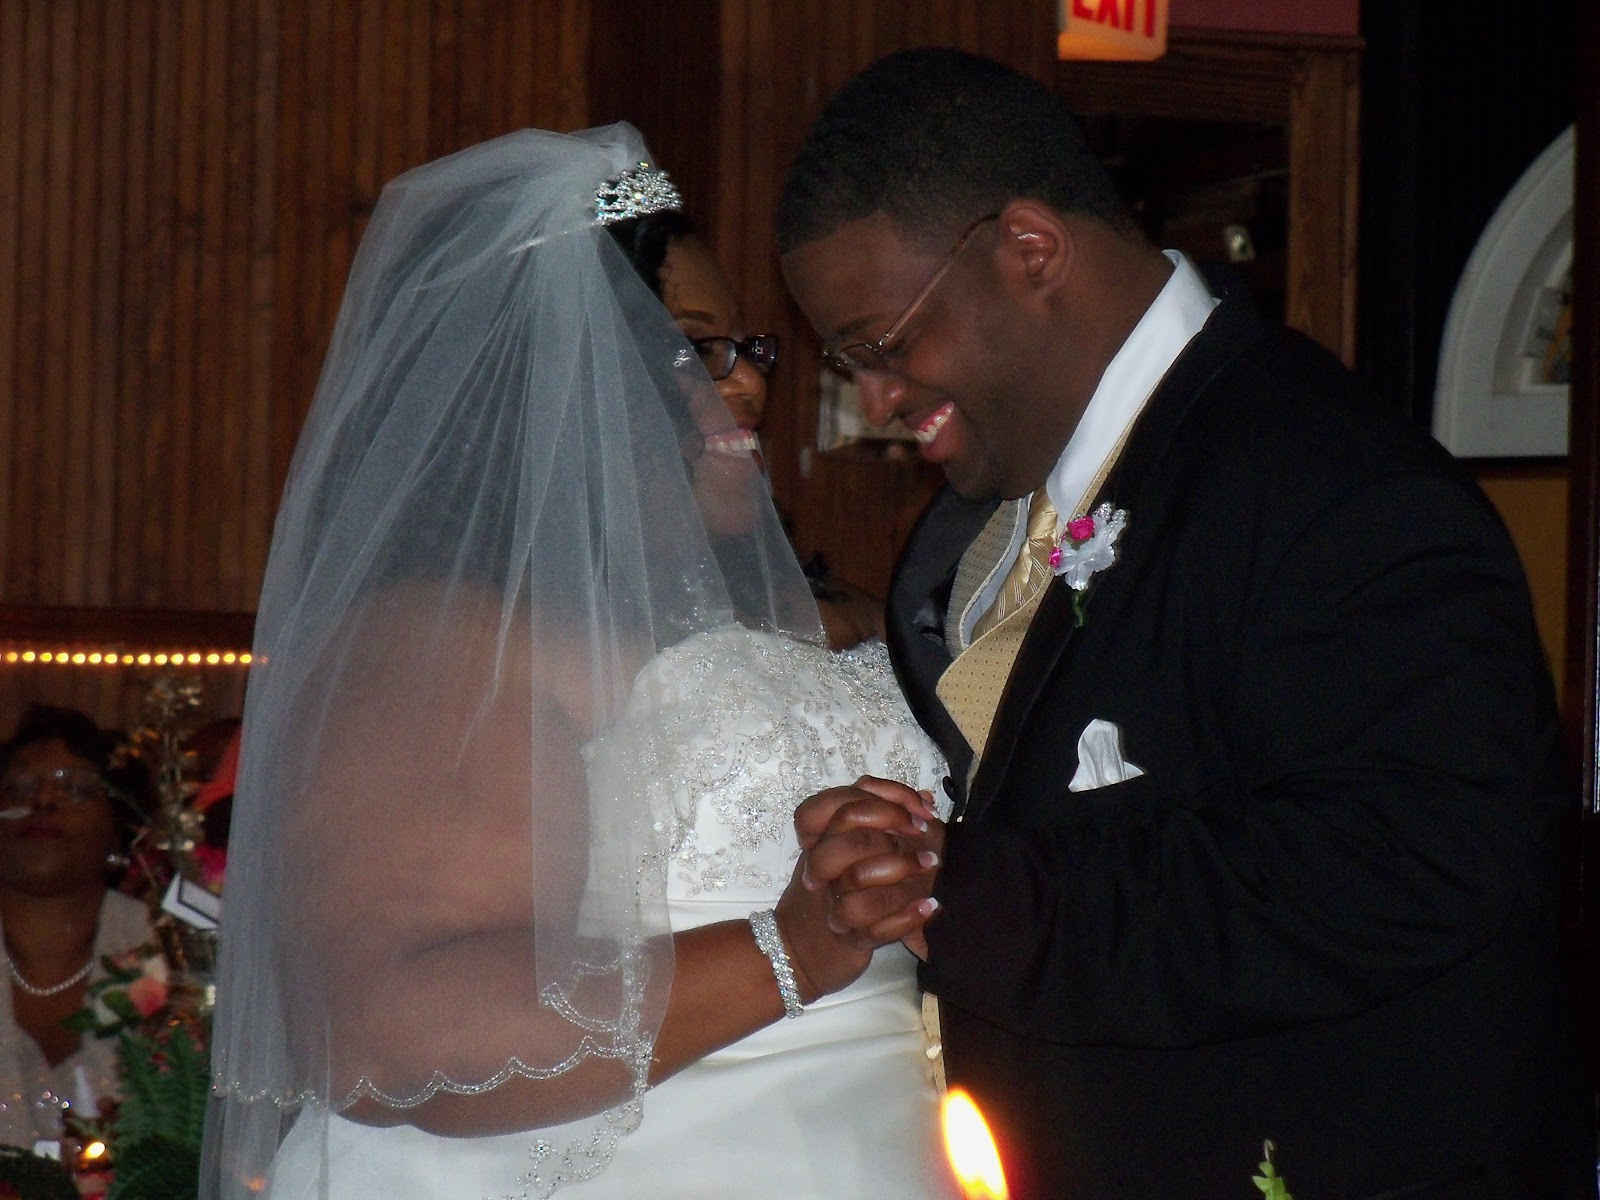 MeChaia Lunn and Clyde Longs wedding - 101_4621.JPG